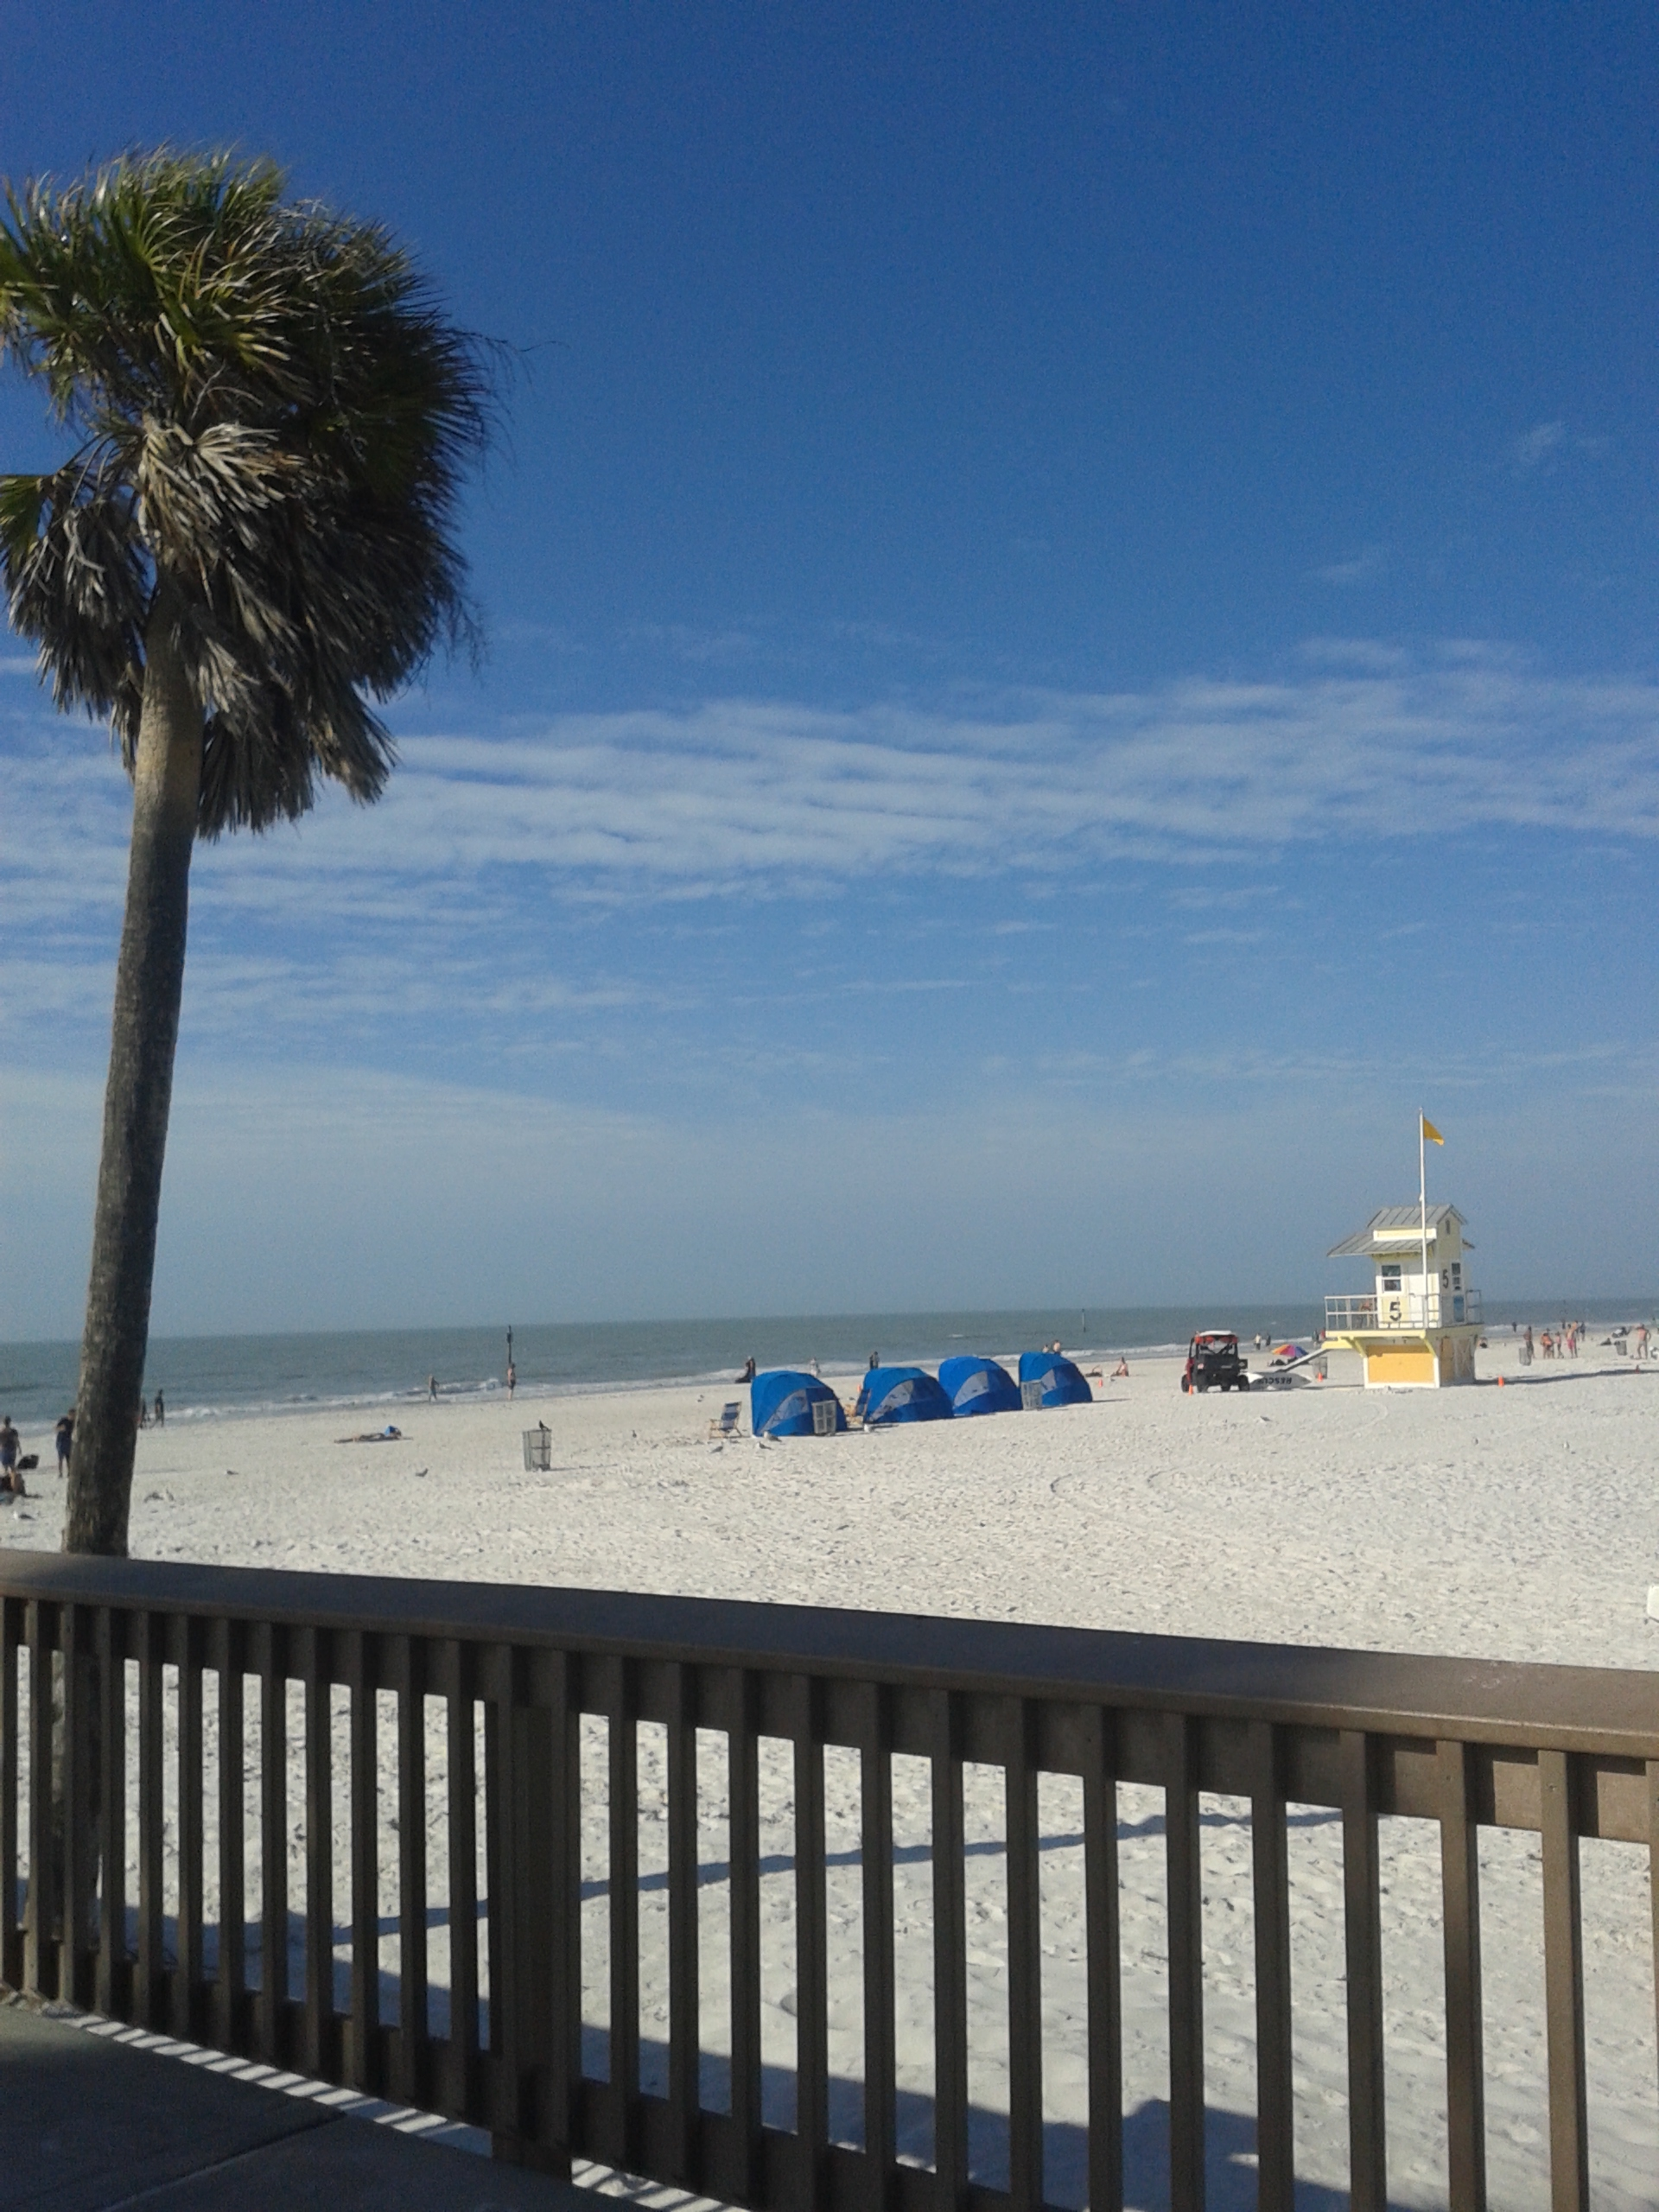 Where is clearwater florida in relation to orlando florida